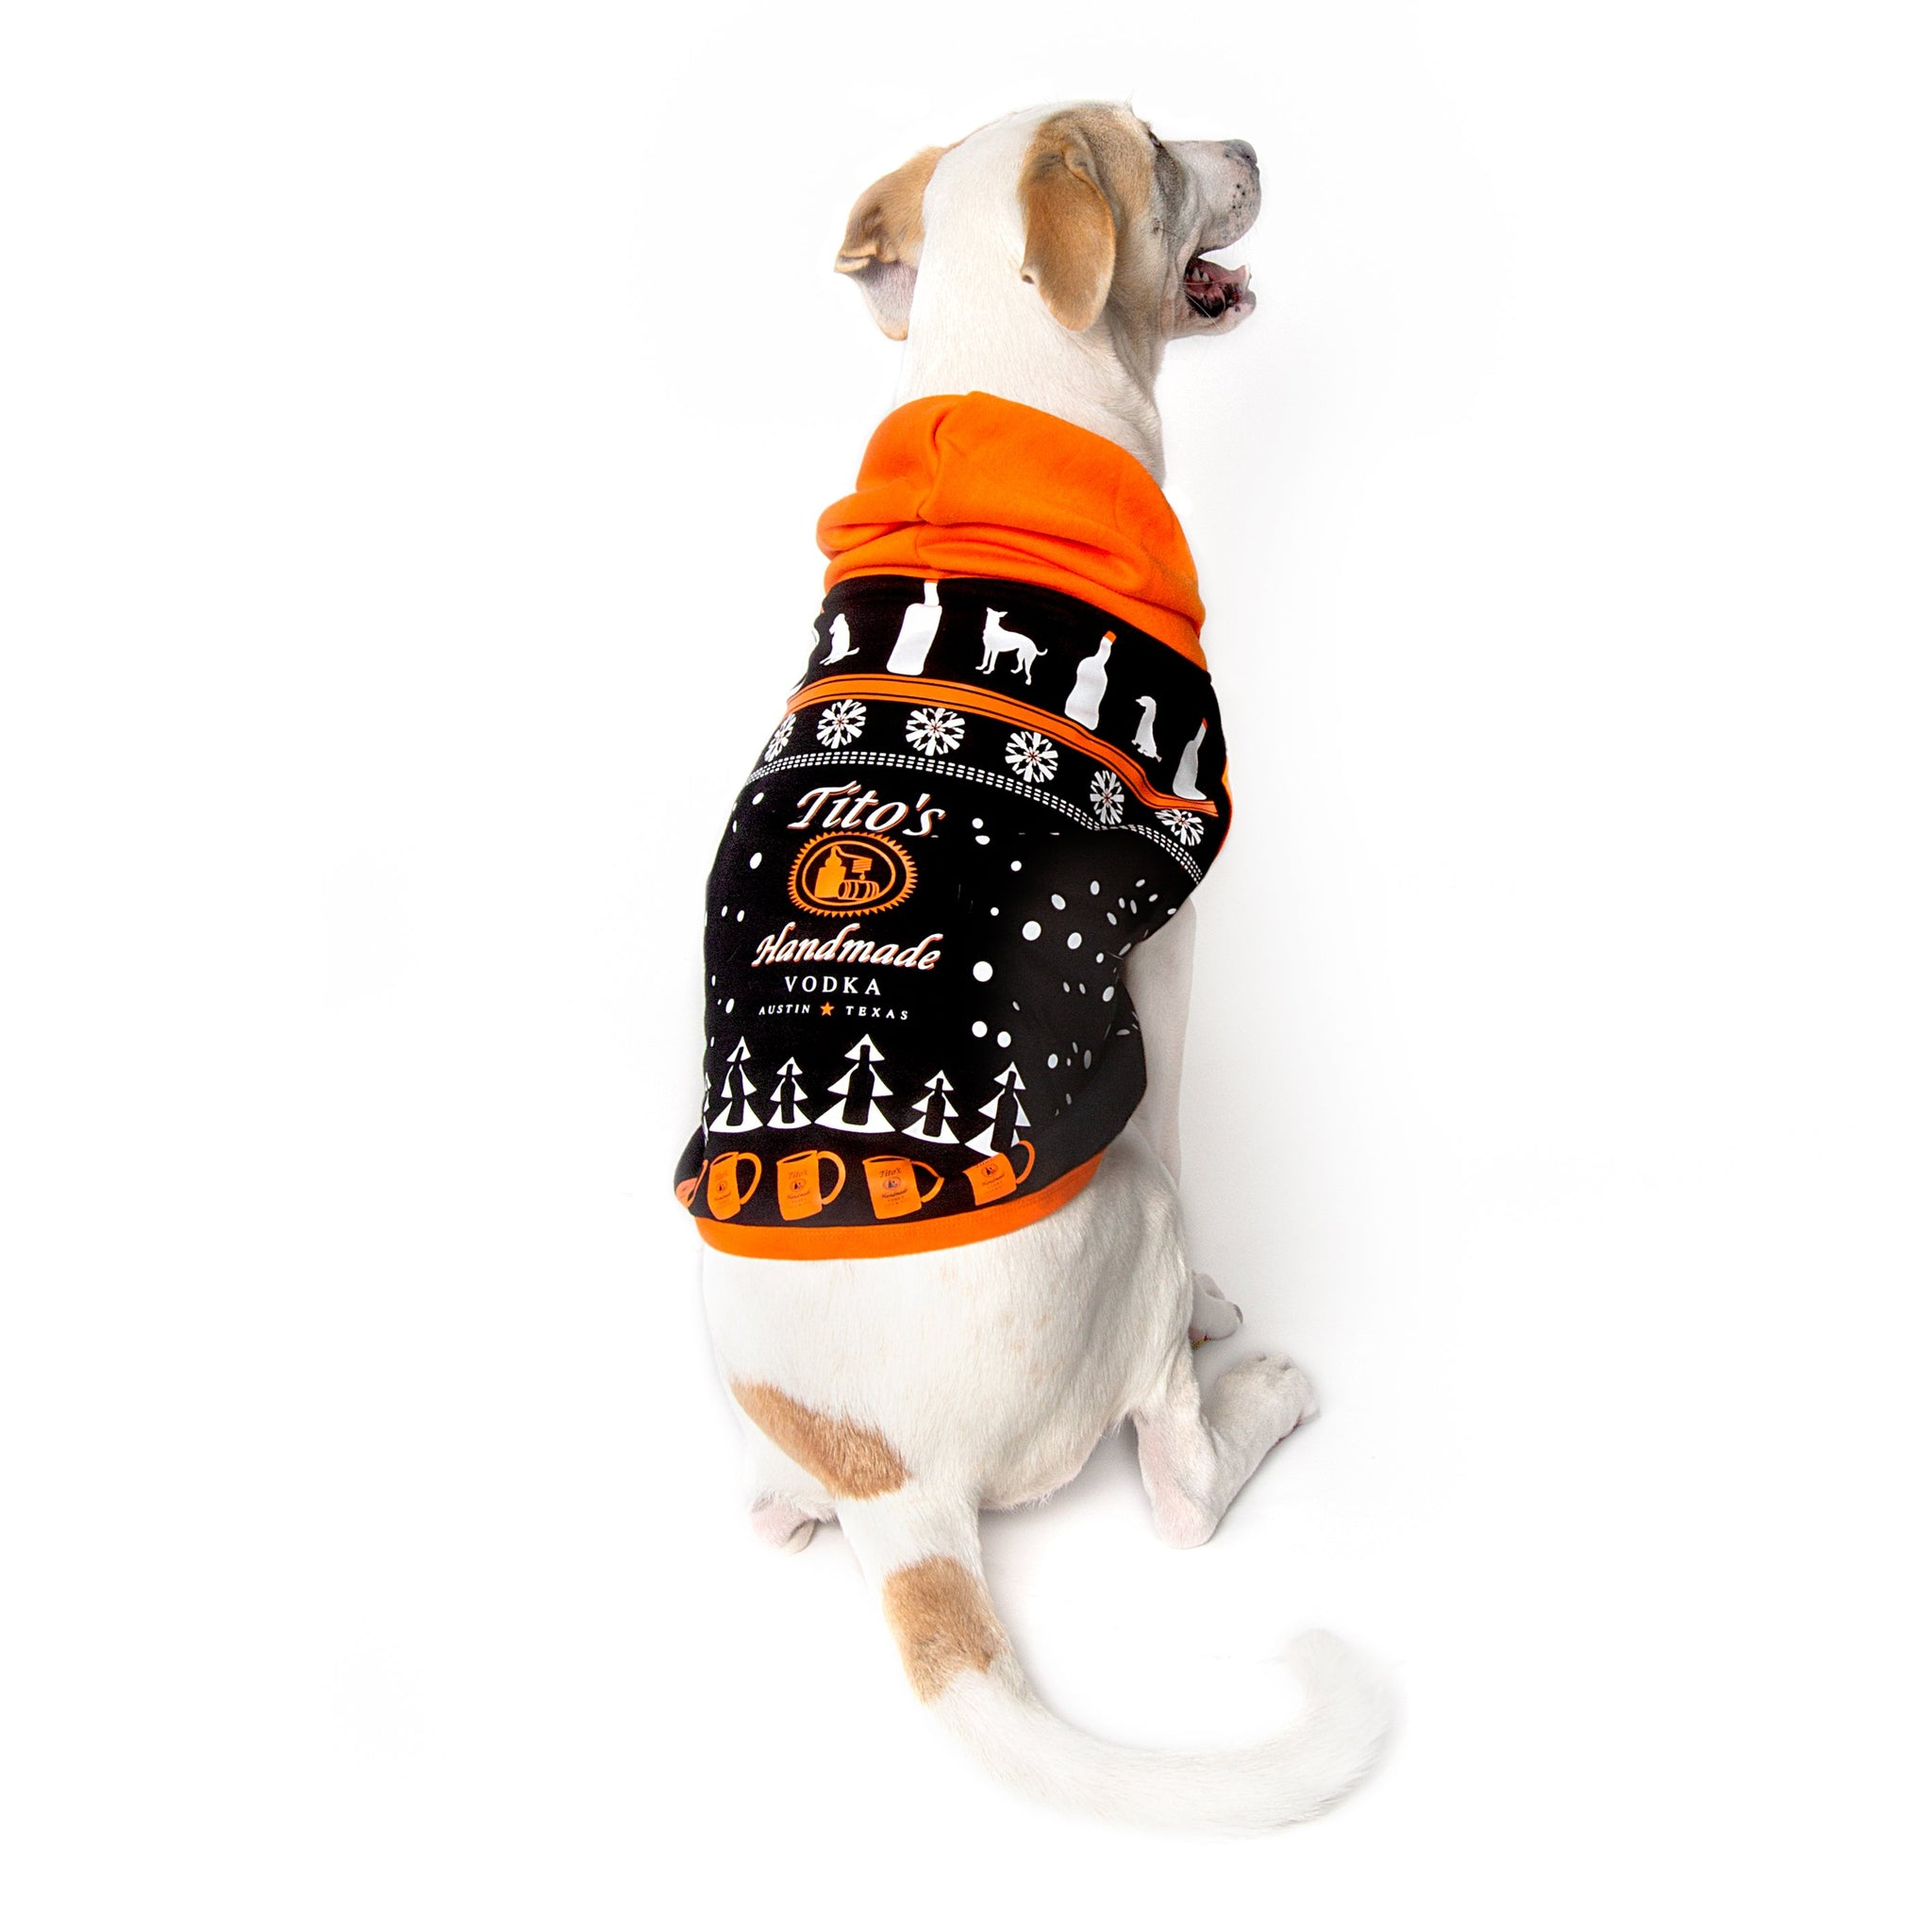 Dog wearing black, orange, and white hooded dog sweatshirt with Tito's Handmade Vodka logo and holiday-inspired designs of dogs, trees, snowflakes, bottles, and copper mule mugs